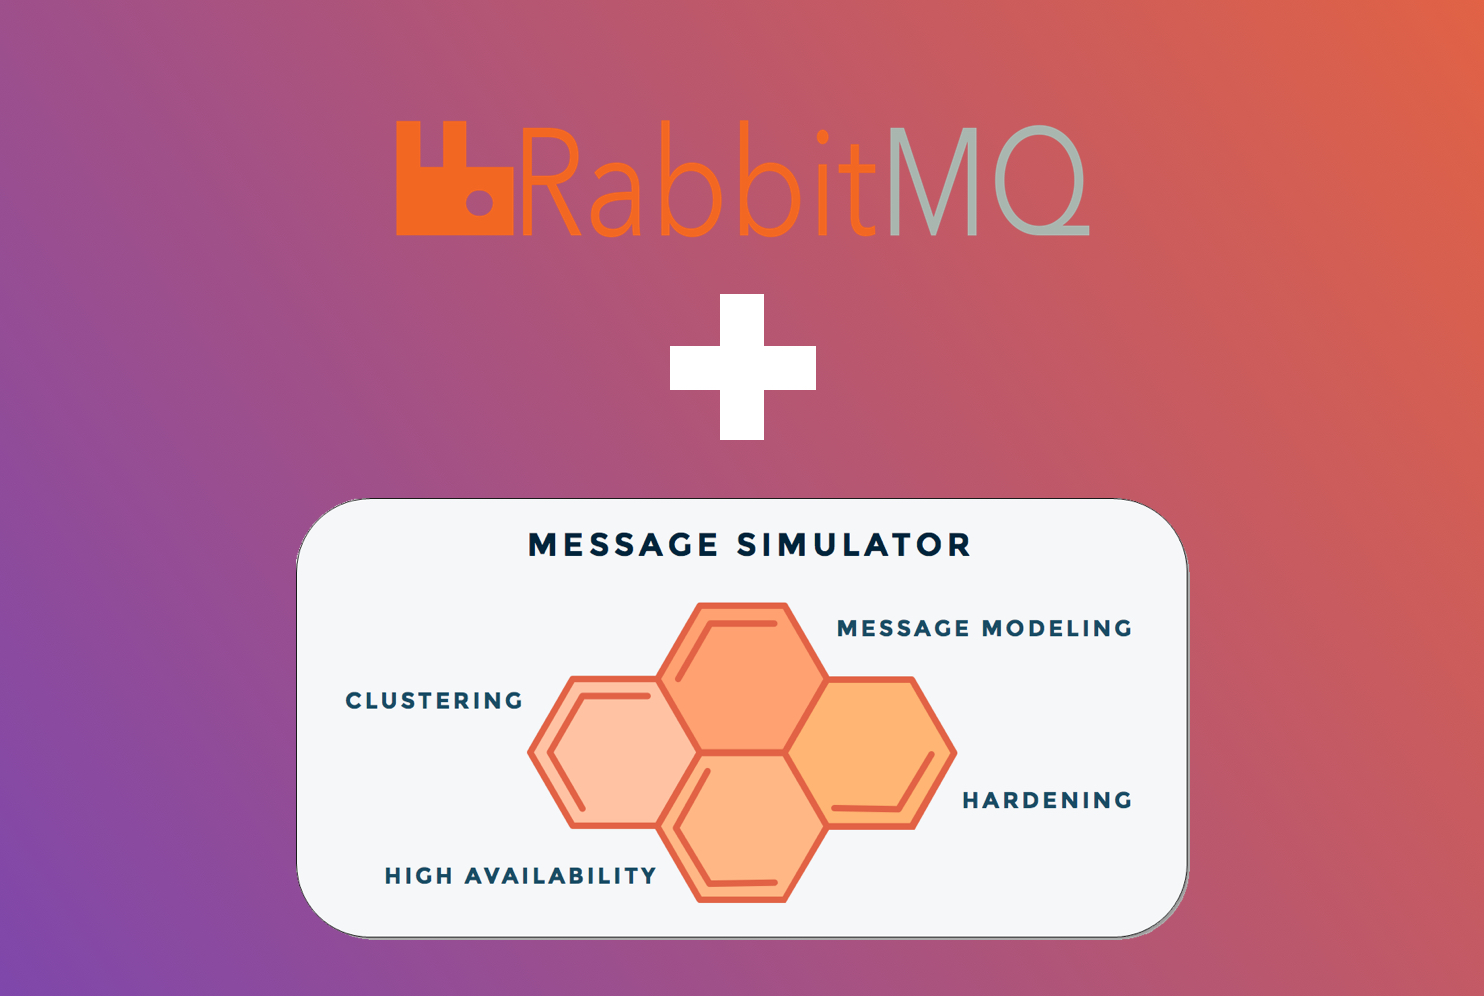 Levvel Blog - Testing RabbitMQ Clustering with a Message Simulator